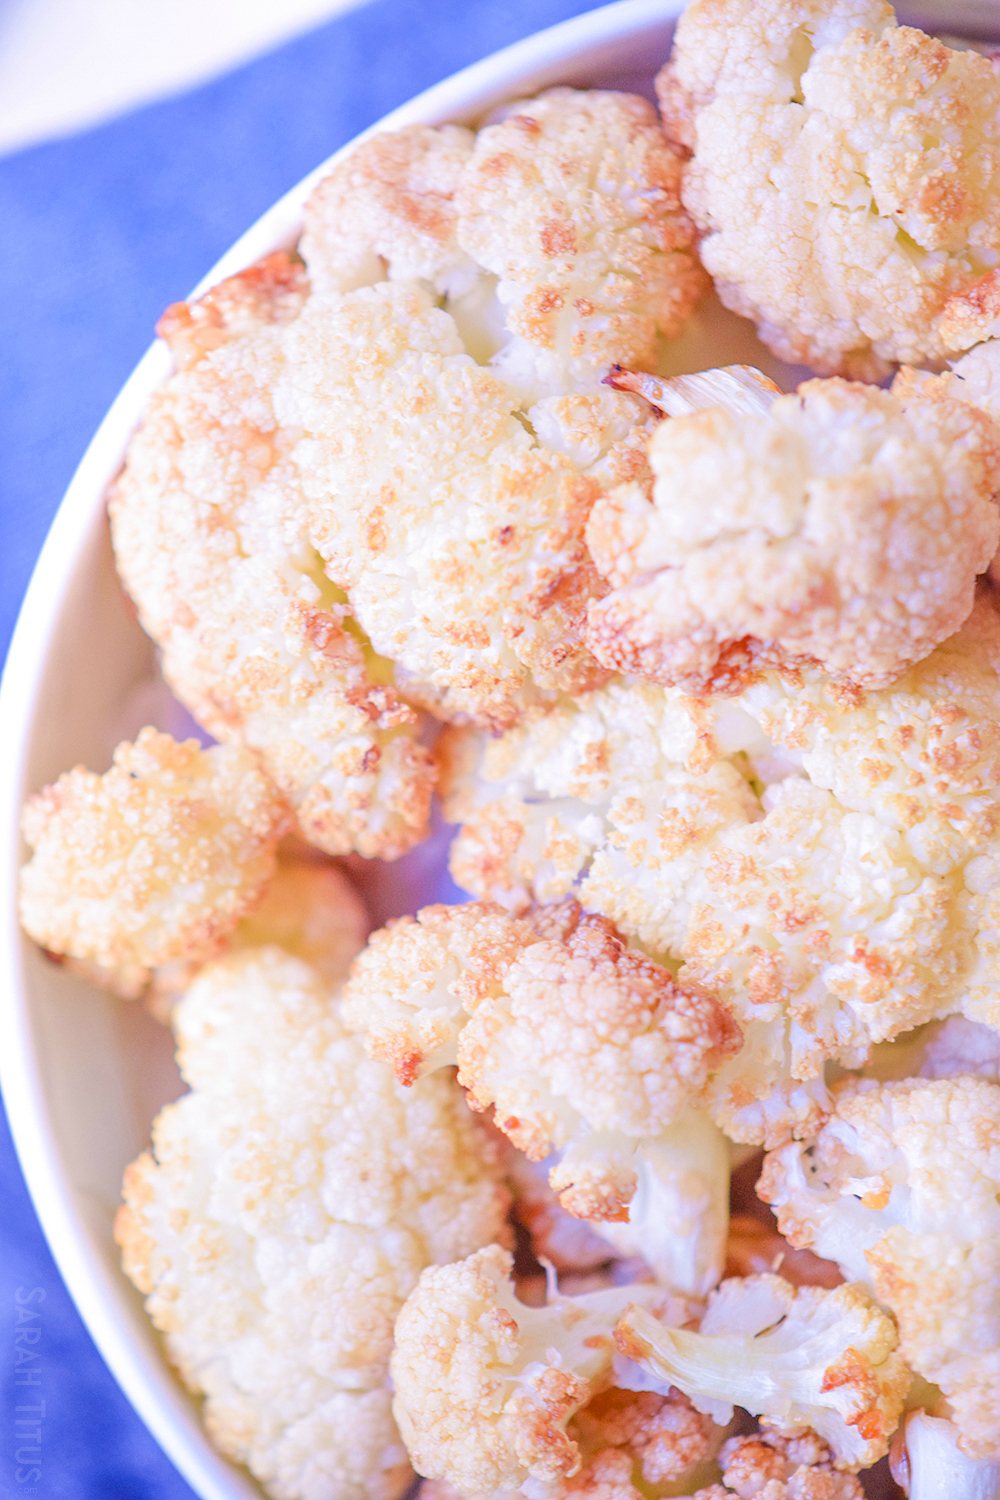 These Sticky Cauliflower Bites make a great side dish for family dinners or appetizer at your next get-together and are the perfect way to get your kids hooked on veggies!